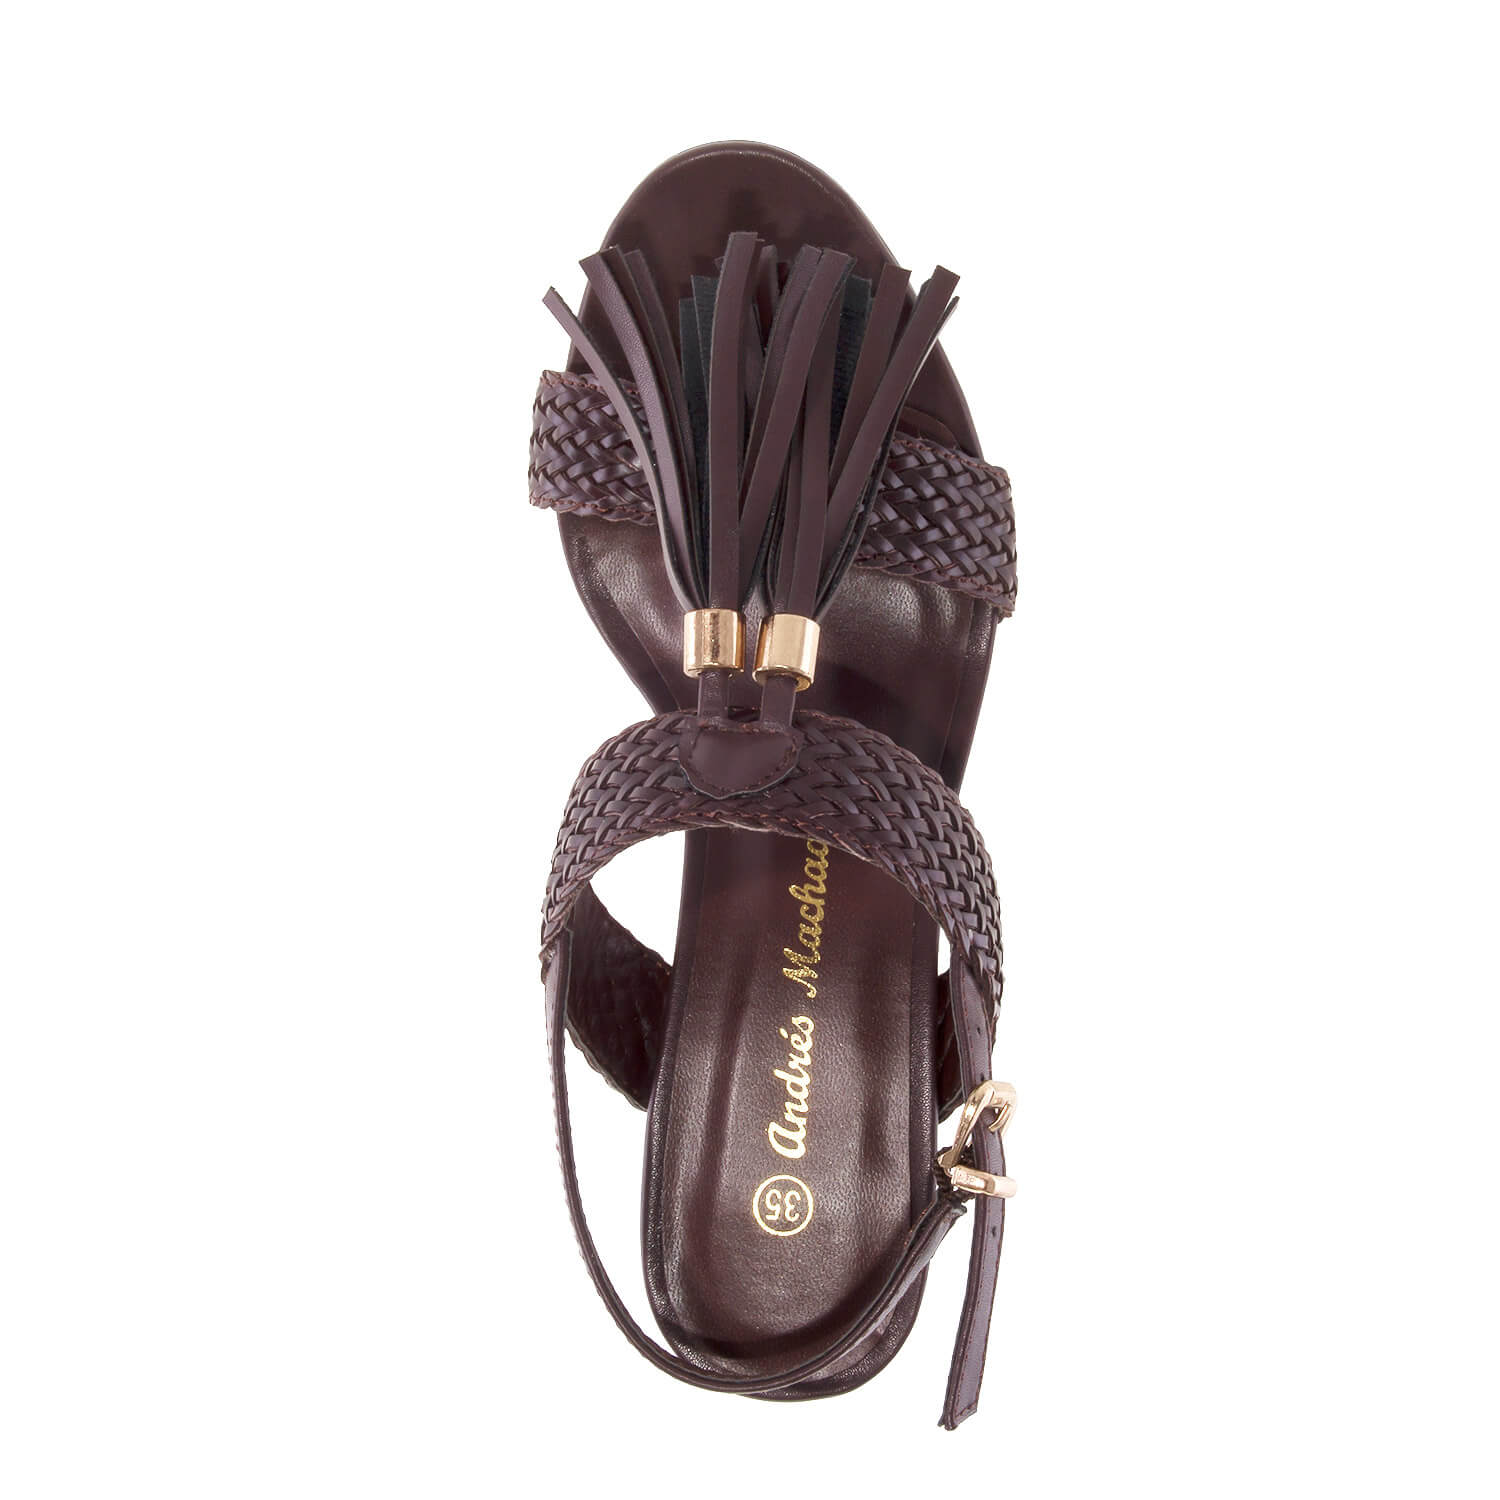 Sandalias en soft color Marron con borlas.